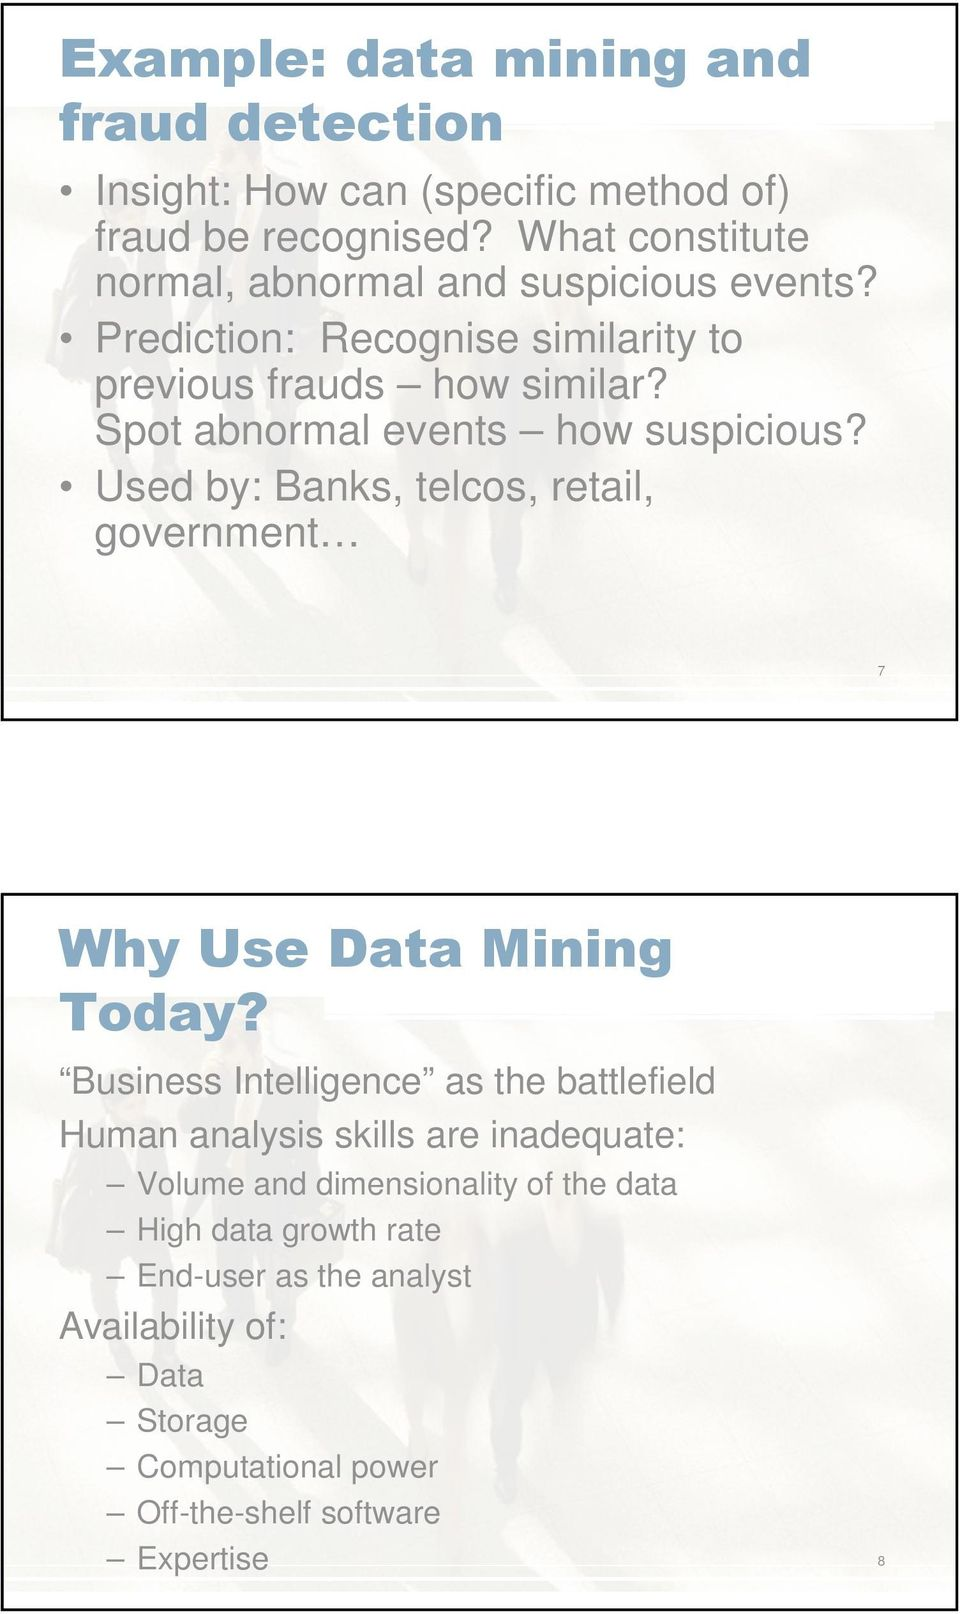 Spot abnormal events how suspicious? Used by: Banks, telcos, retail, government 7 Why Use Data Mining Today?